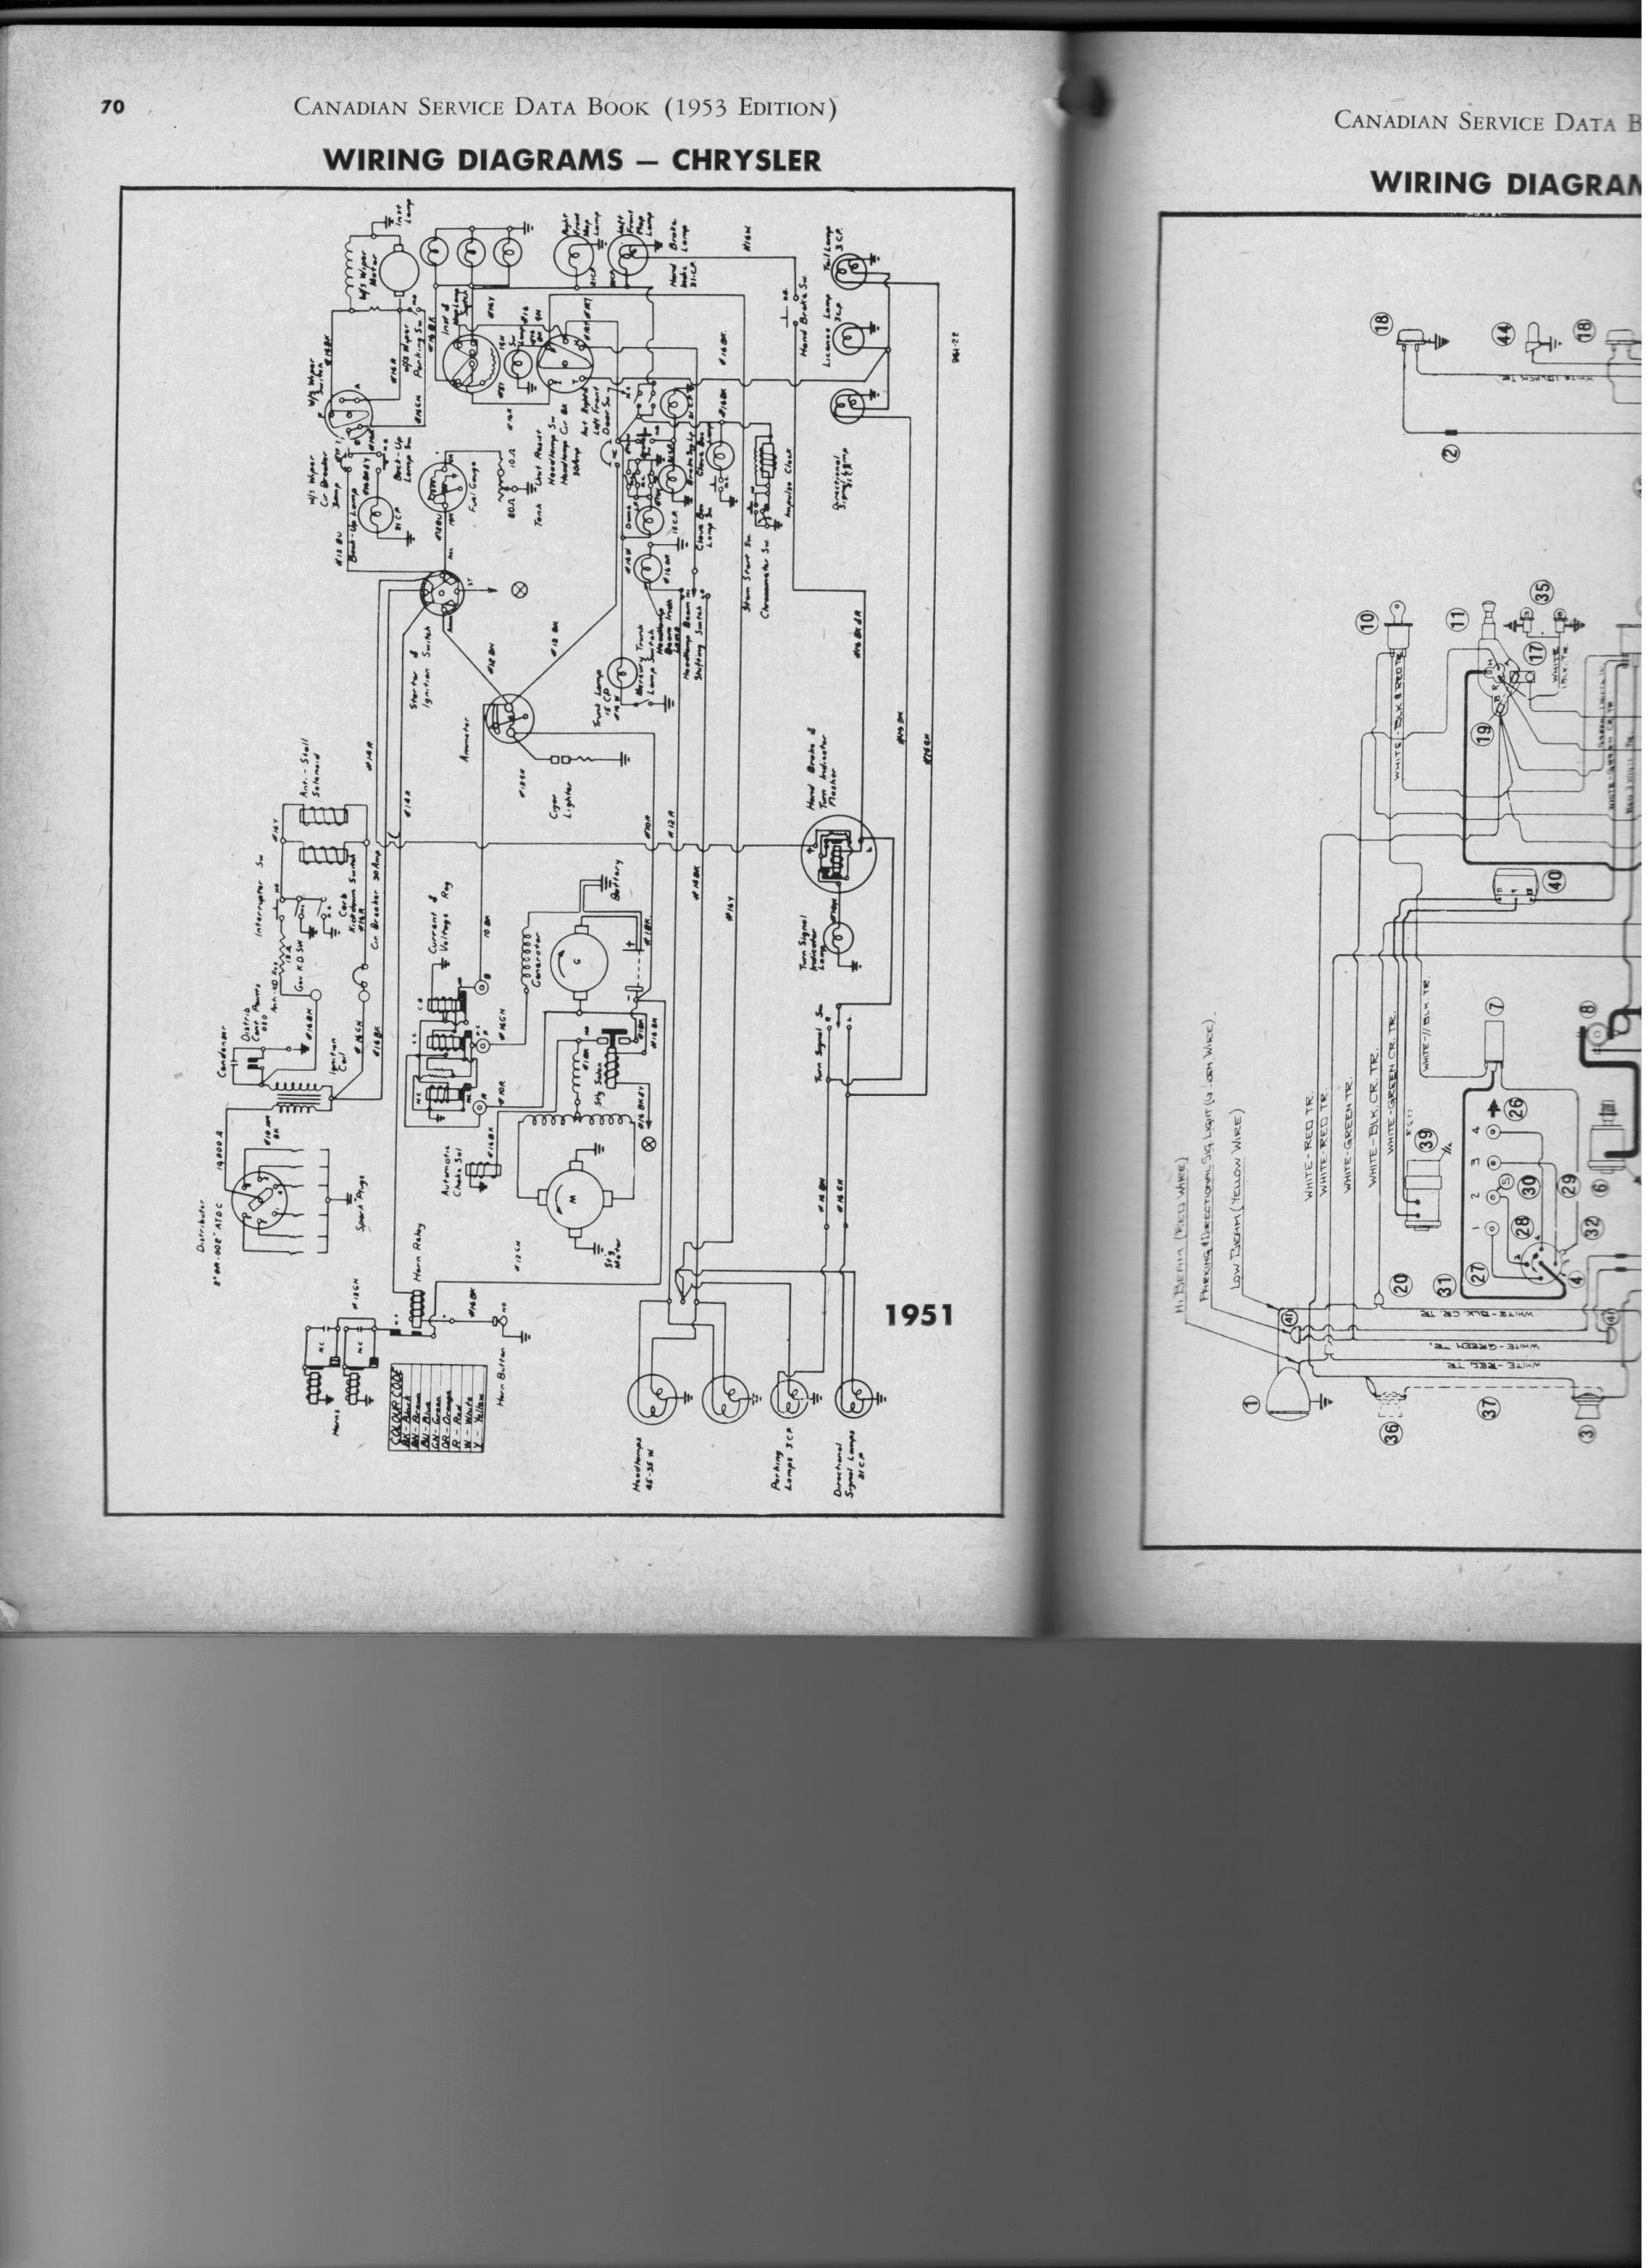 hight resolution of desoto wiring diagram wiring diagrams img1954 mopar wiring diagrams wiring diagrams electrical wiring diagrams desoto wiring